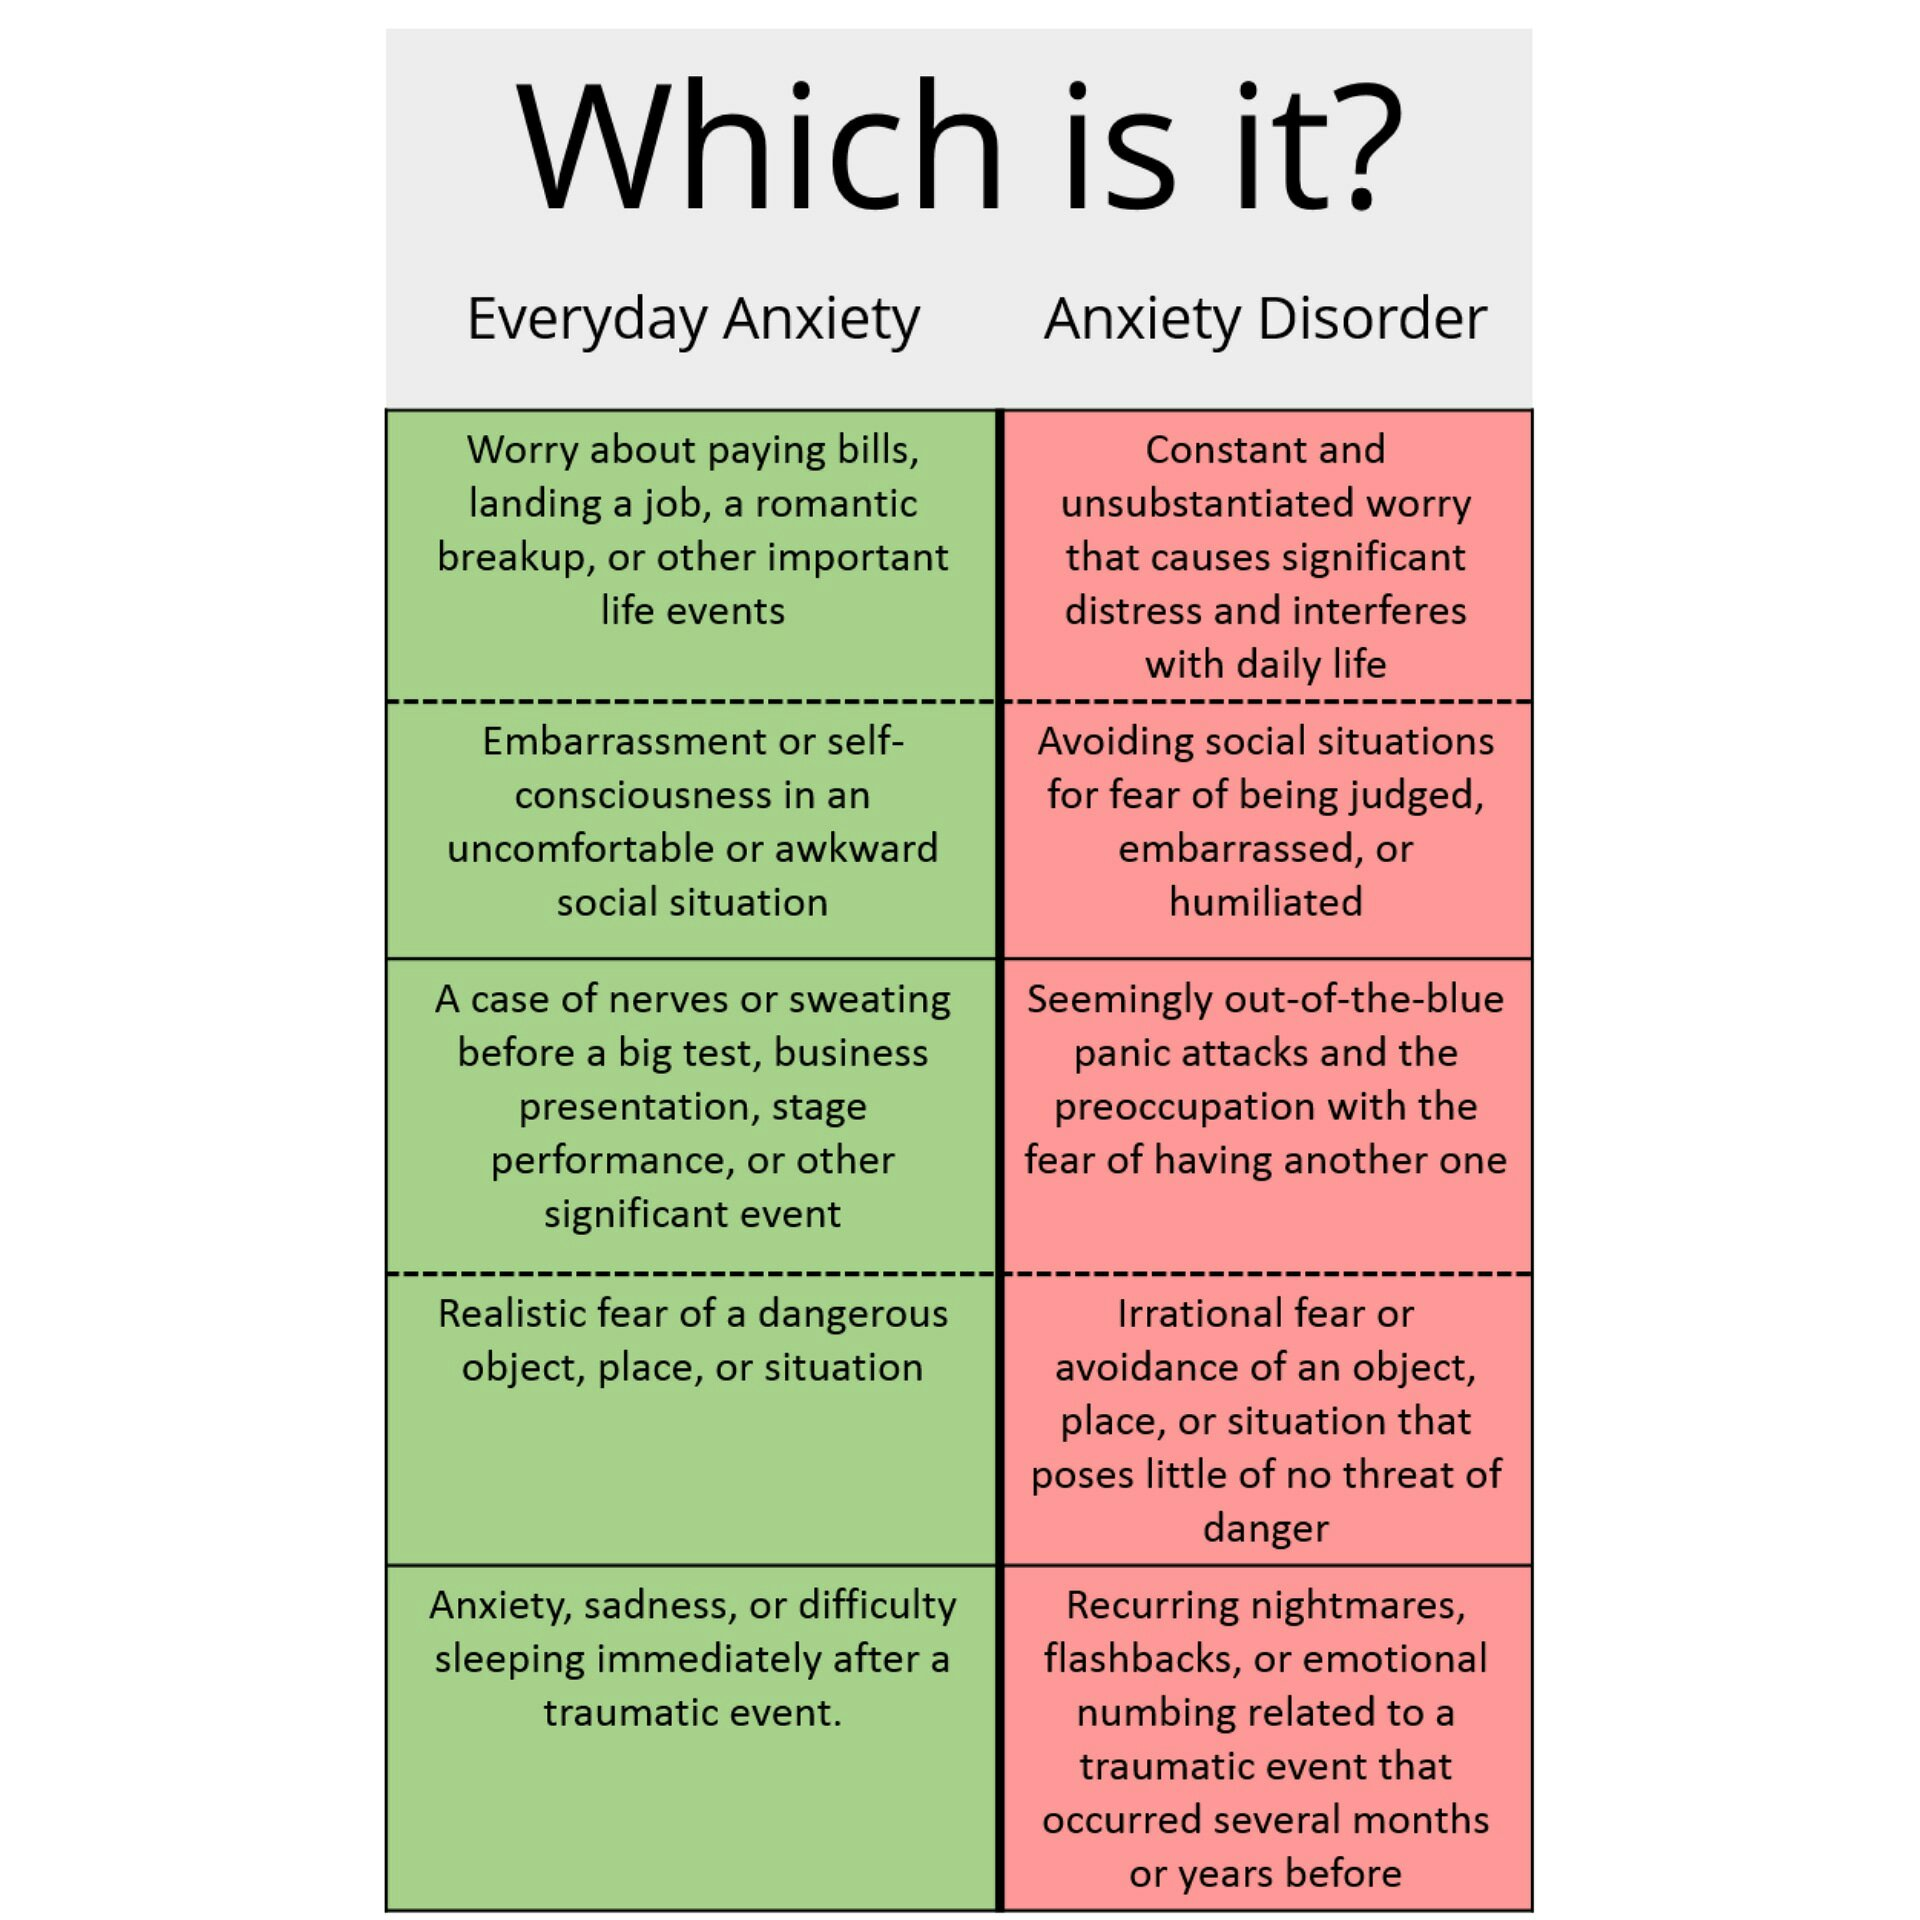 The Differences Between Everyday Anxiety And An Anxiety